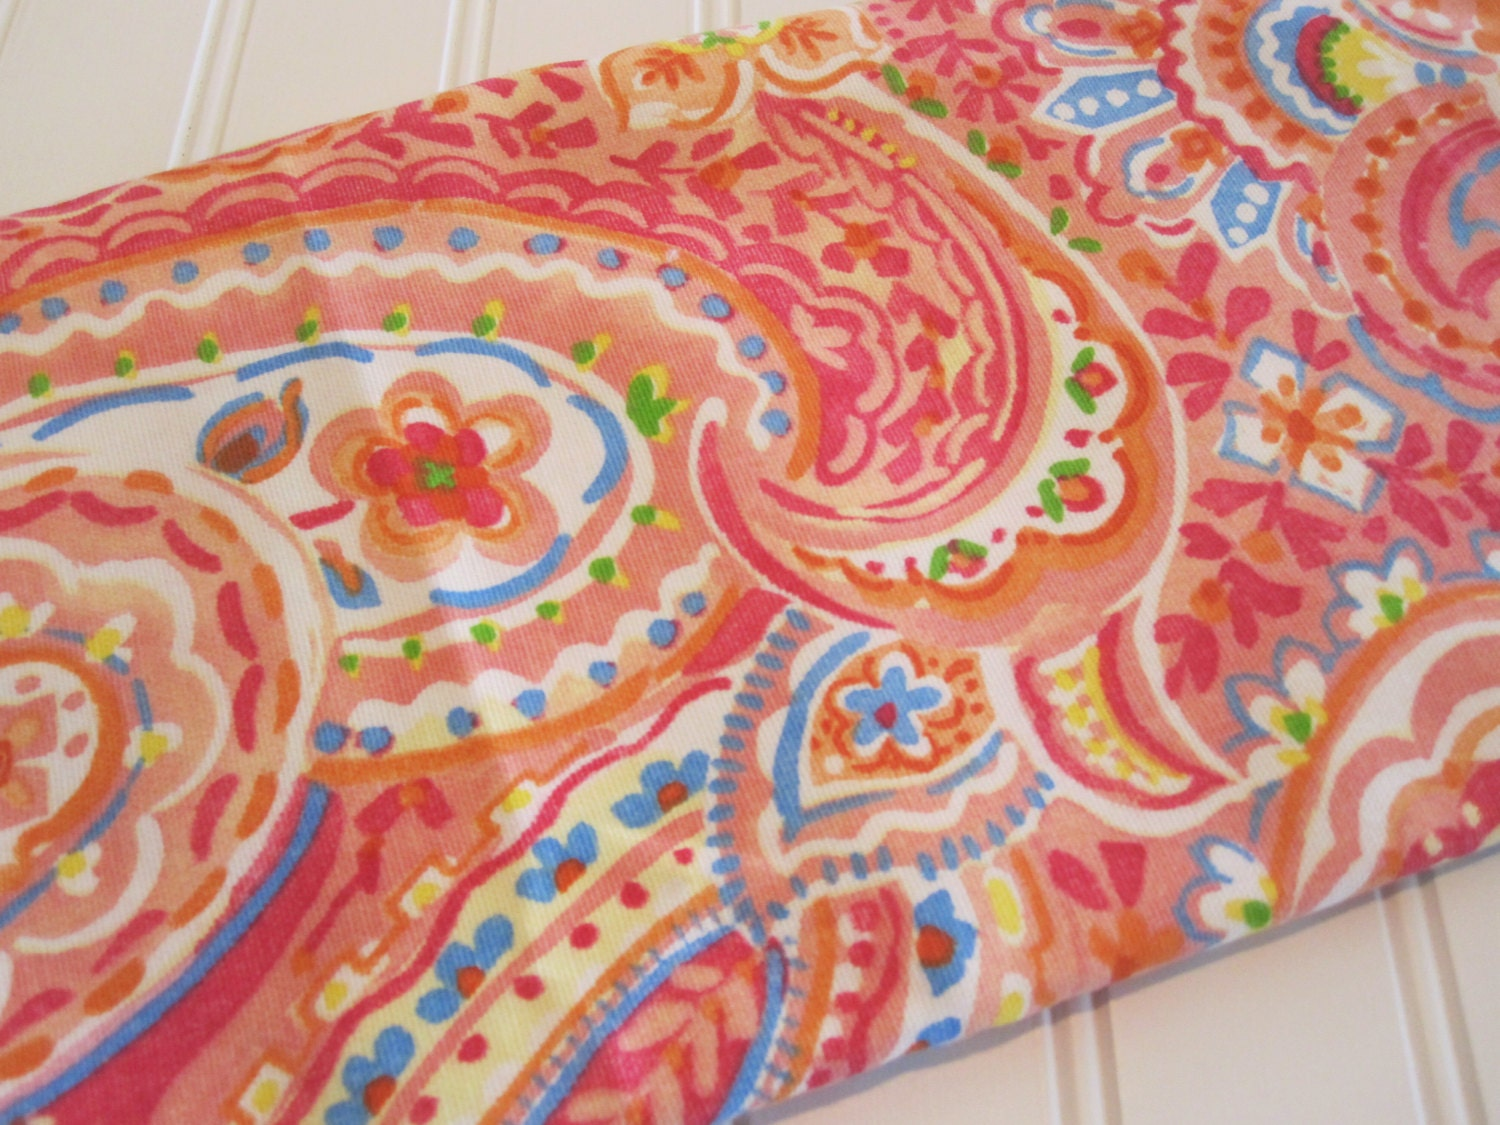 Home Decor Fabric Waverly Fabric Paisley Fabric Pink